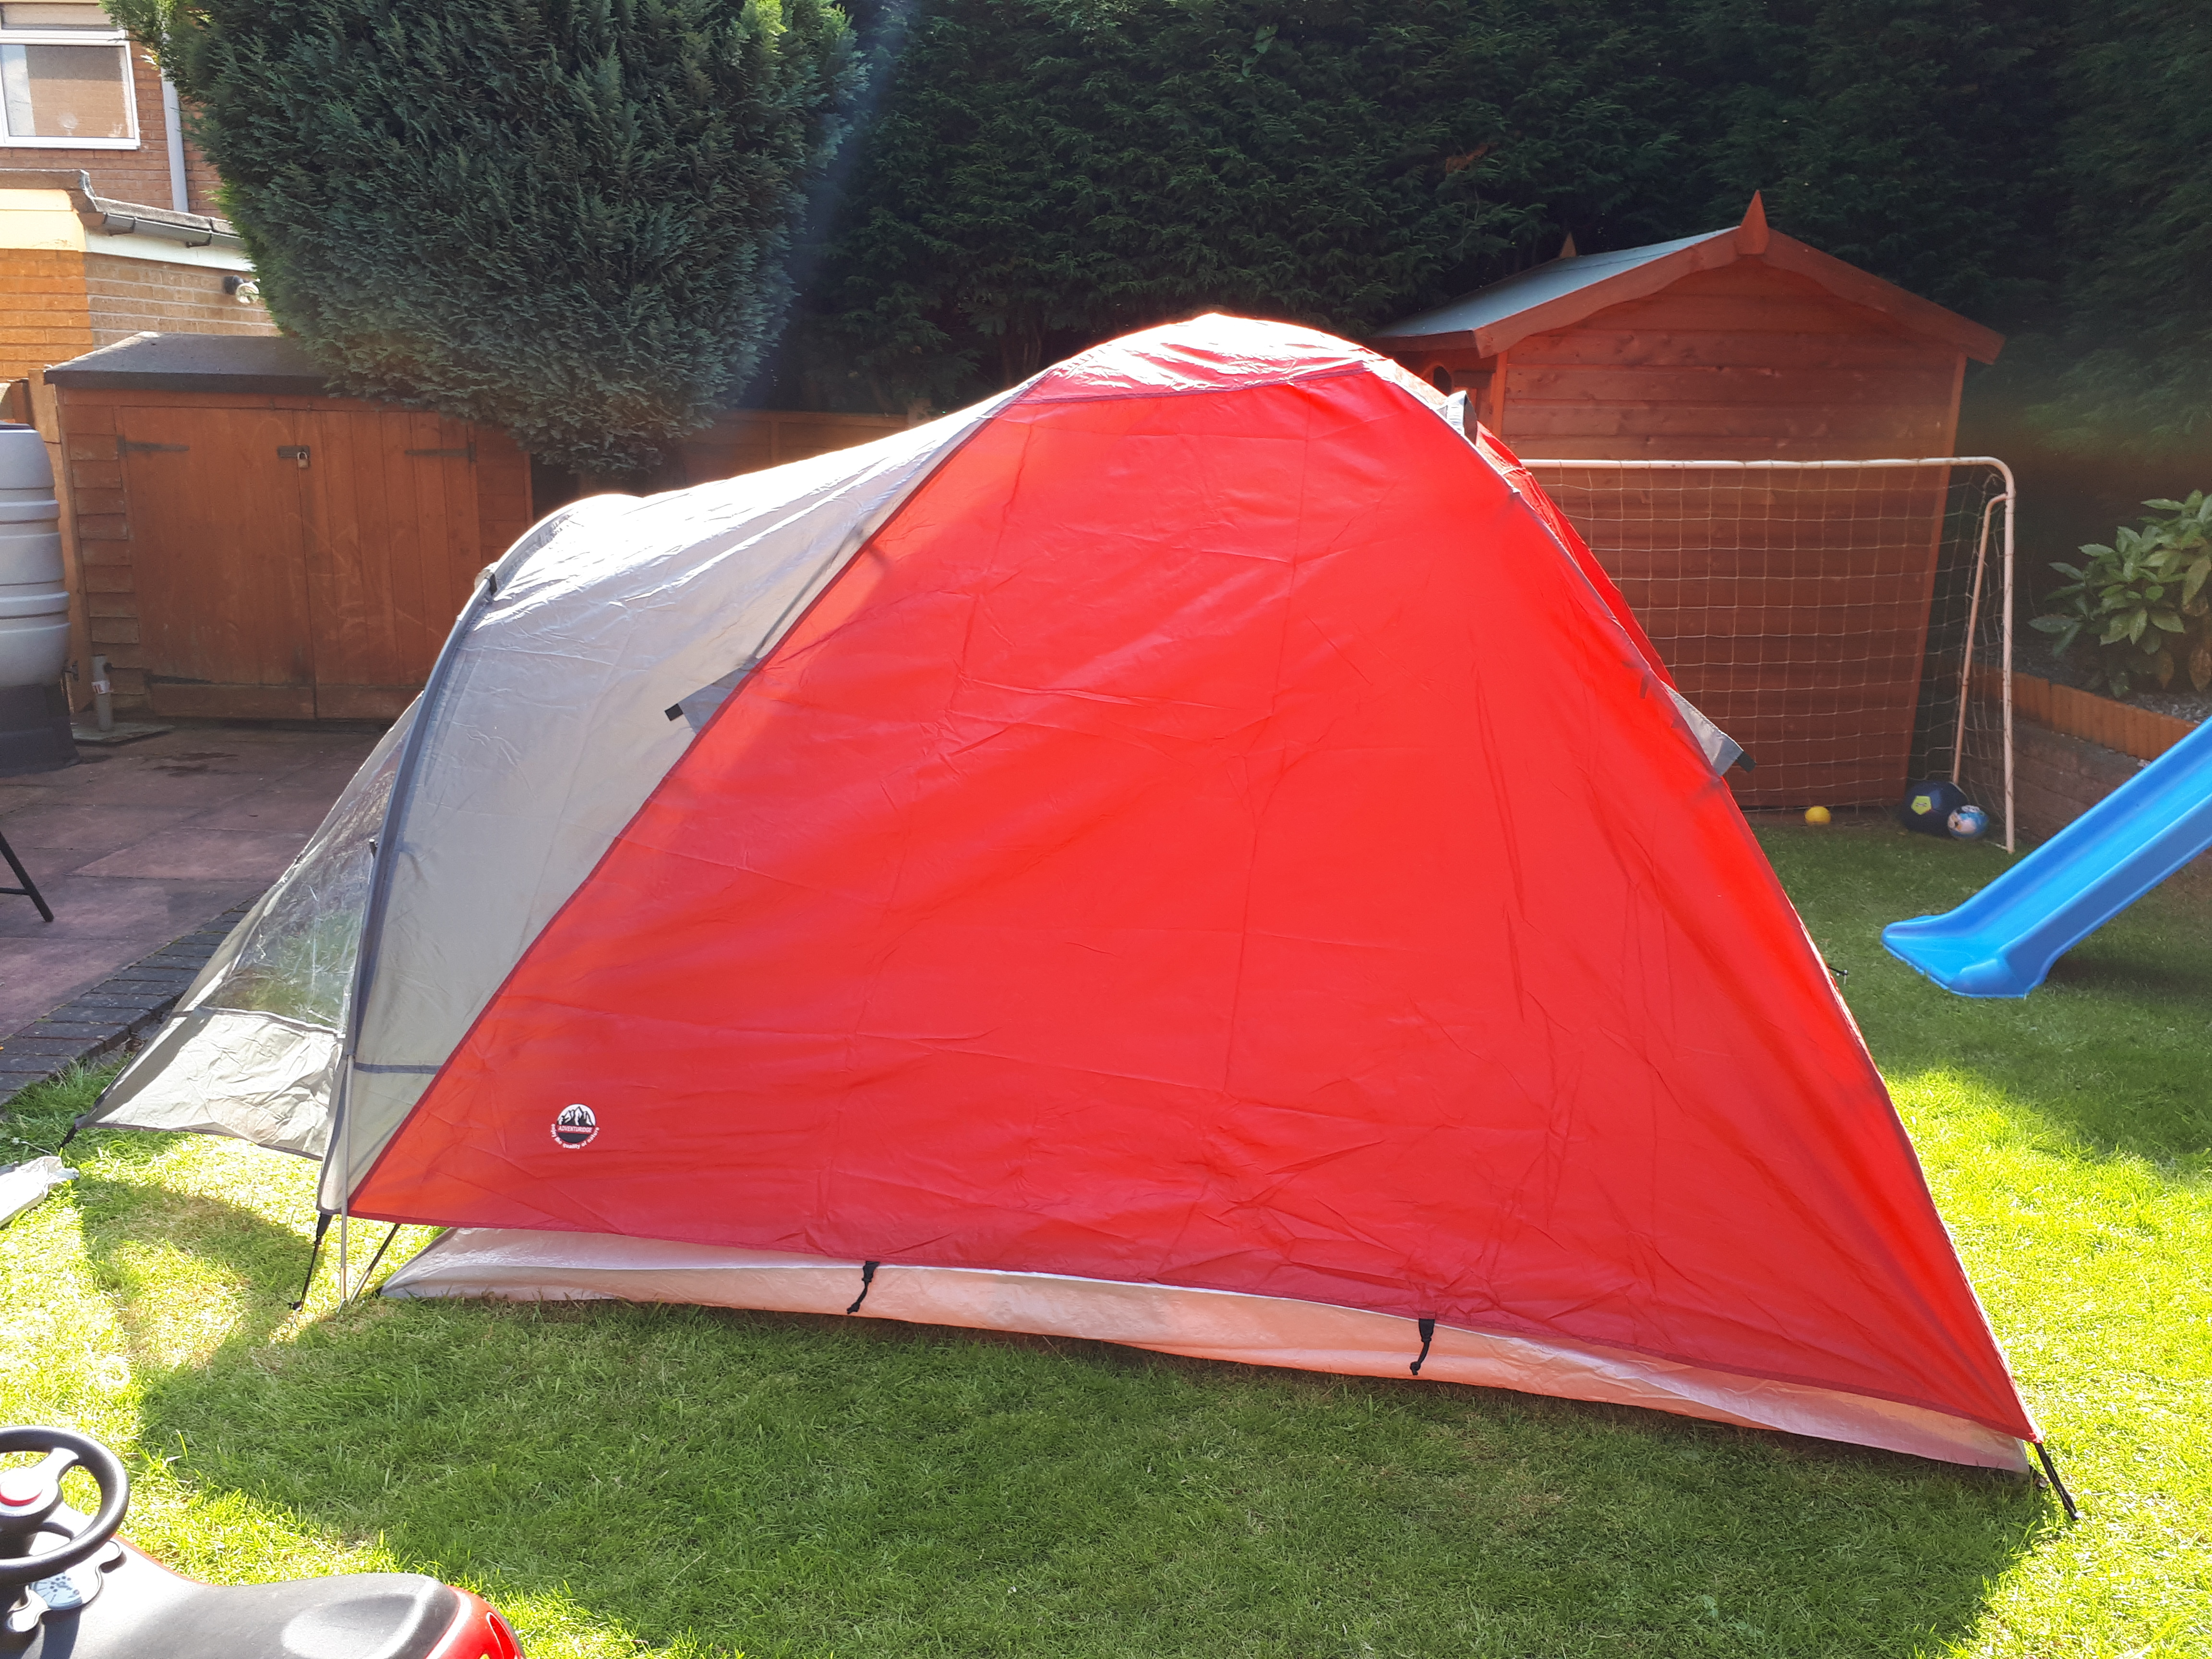 Red tent pitched in a small back garden